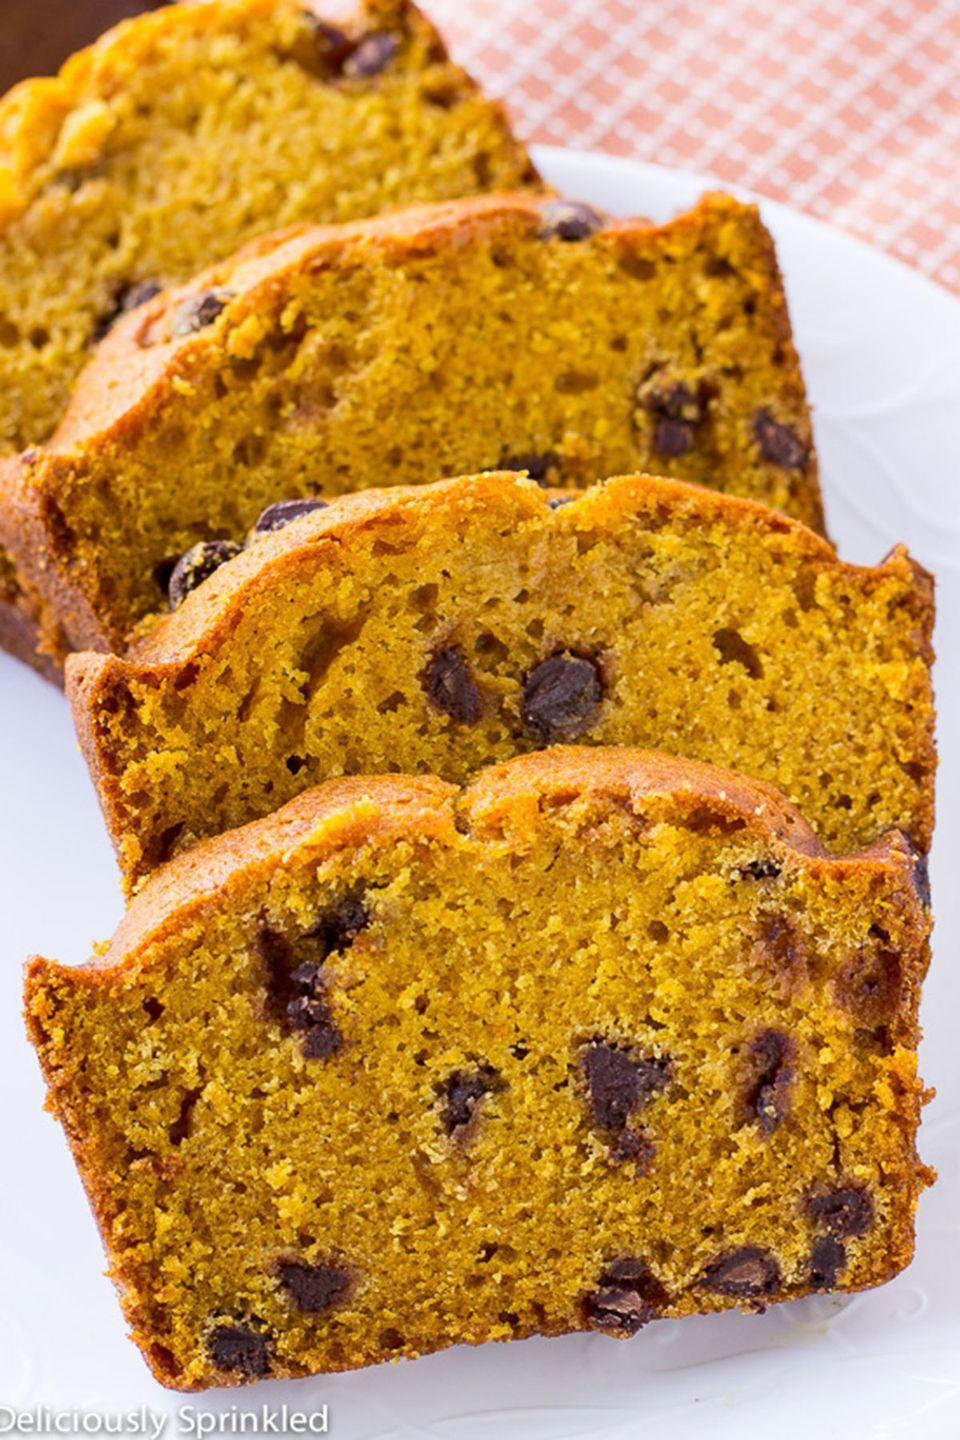 """<p>This simply delicious pumpkin bread will be a hit with anyone who has a sweet tooth. </p><p><strong>Get the recipe at <a href=""""http://deliciouslysprinkled.com/pumpkin-chocolate-chip-bread/"""" rel=""""nofollow noopener"""" target=""""_blank"""" data-ylk=""""slk:Deliciously Sprinkled"""" class=""""link rapid-noclick-resp"""">Deliciously Sprinkled</a>. </strong></p>"""